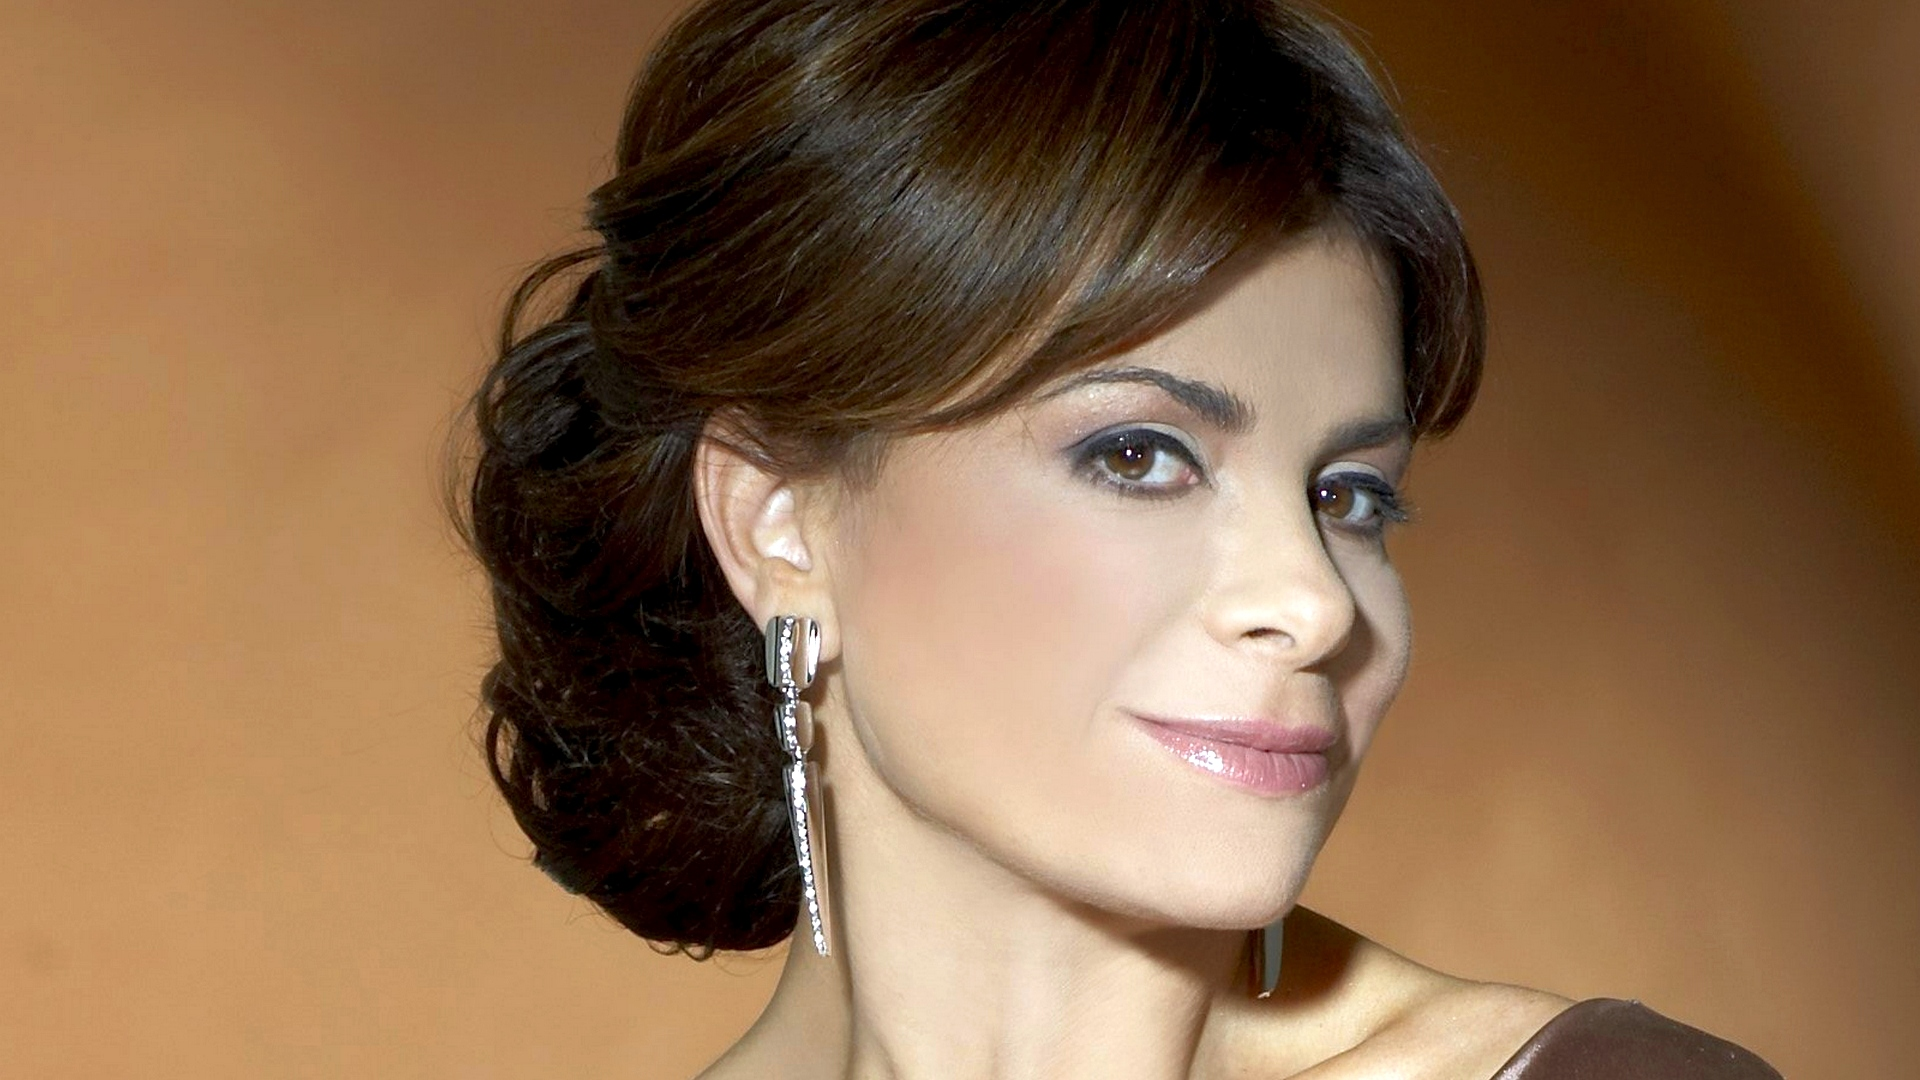 paula abdul Learn more about paula abdul at tvguidecom with exclusive news, full bio and filmography as well as photos, videos, and more.